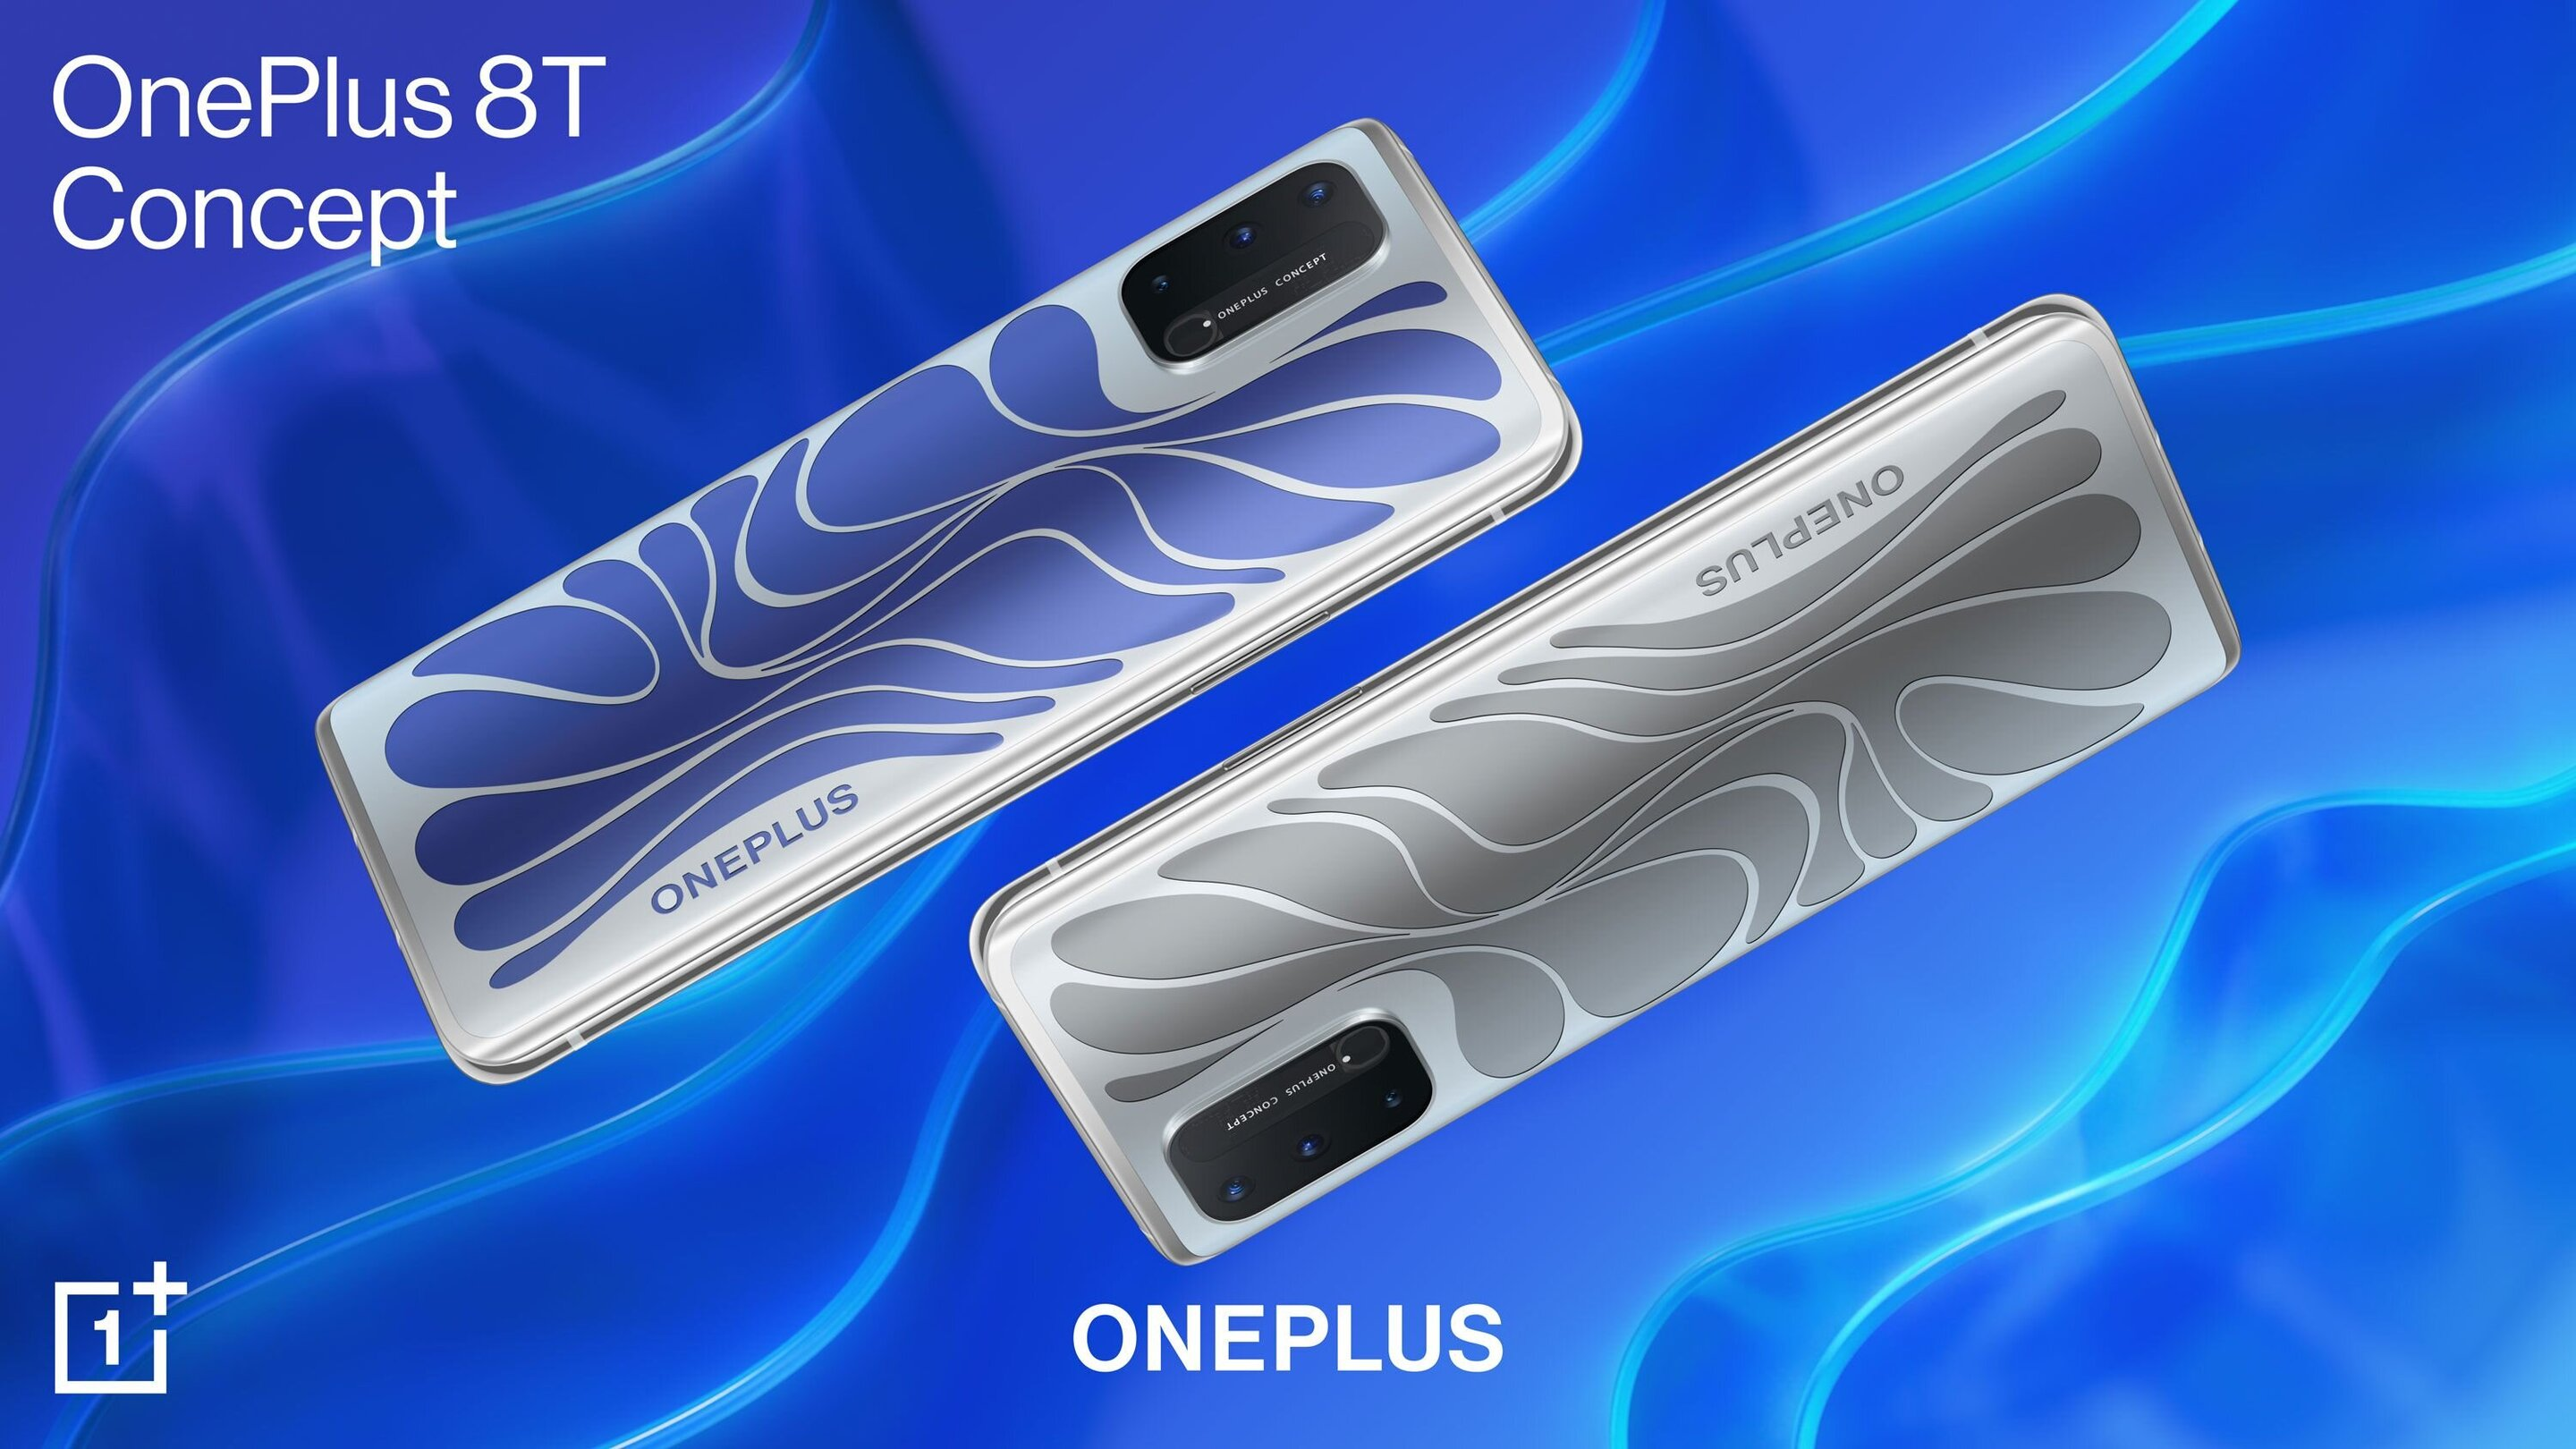 OnePlus 8T Concept phone has color-shifting, camera-camouflage features